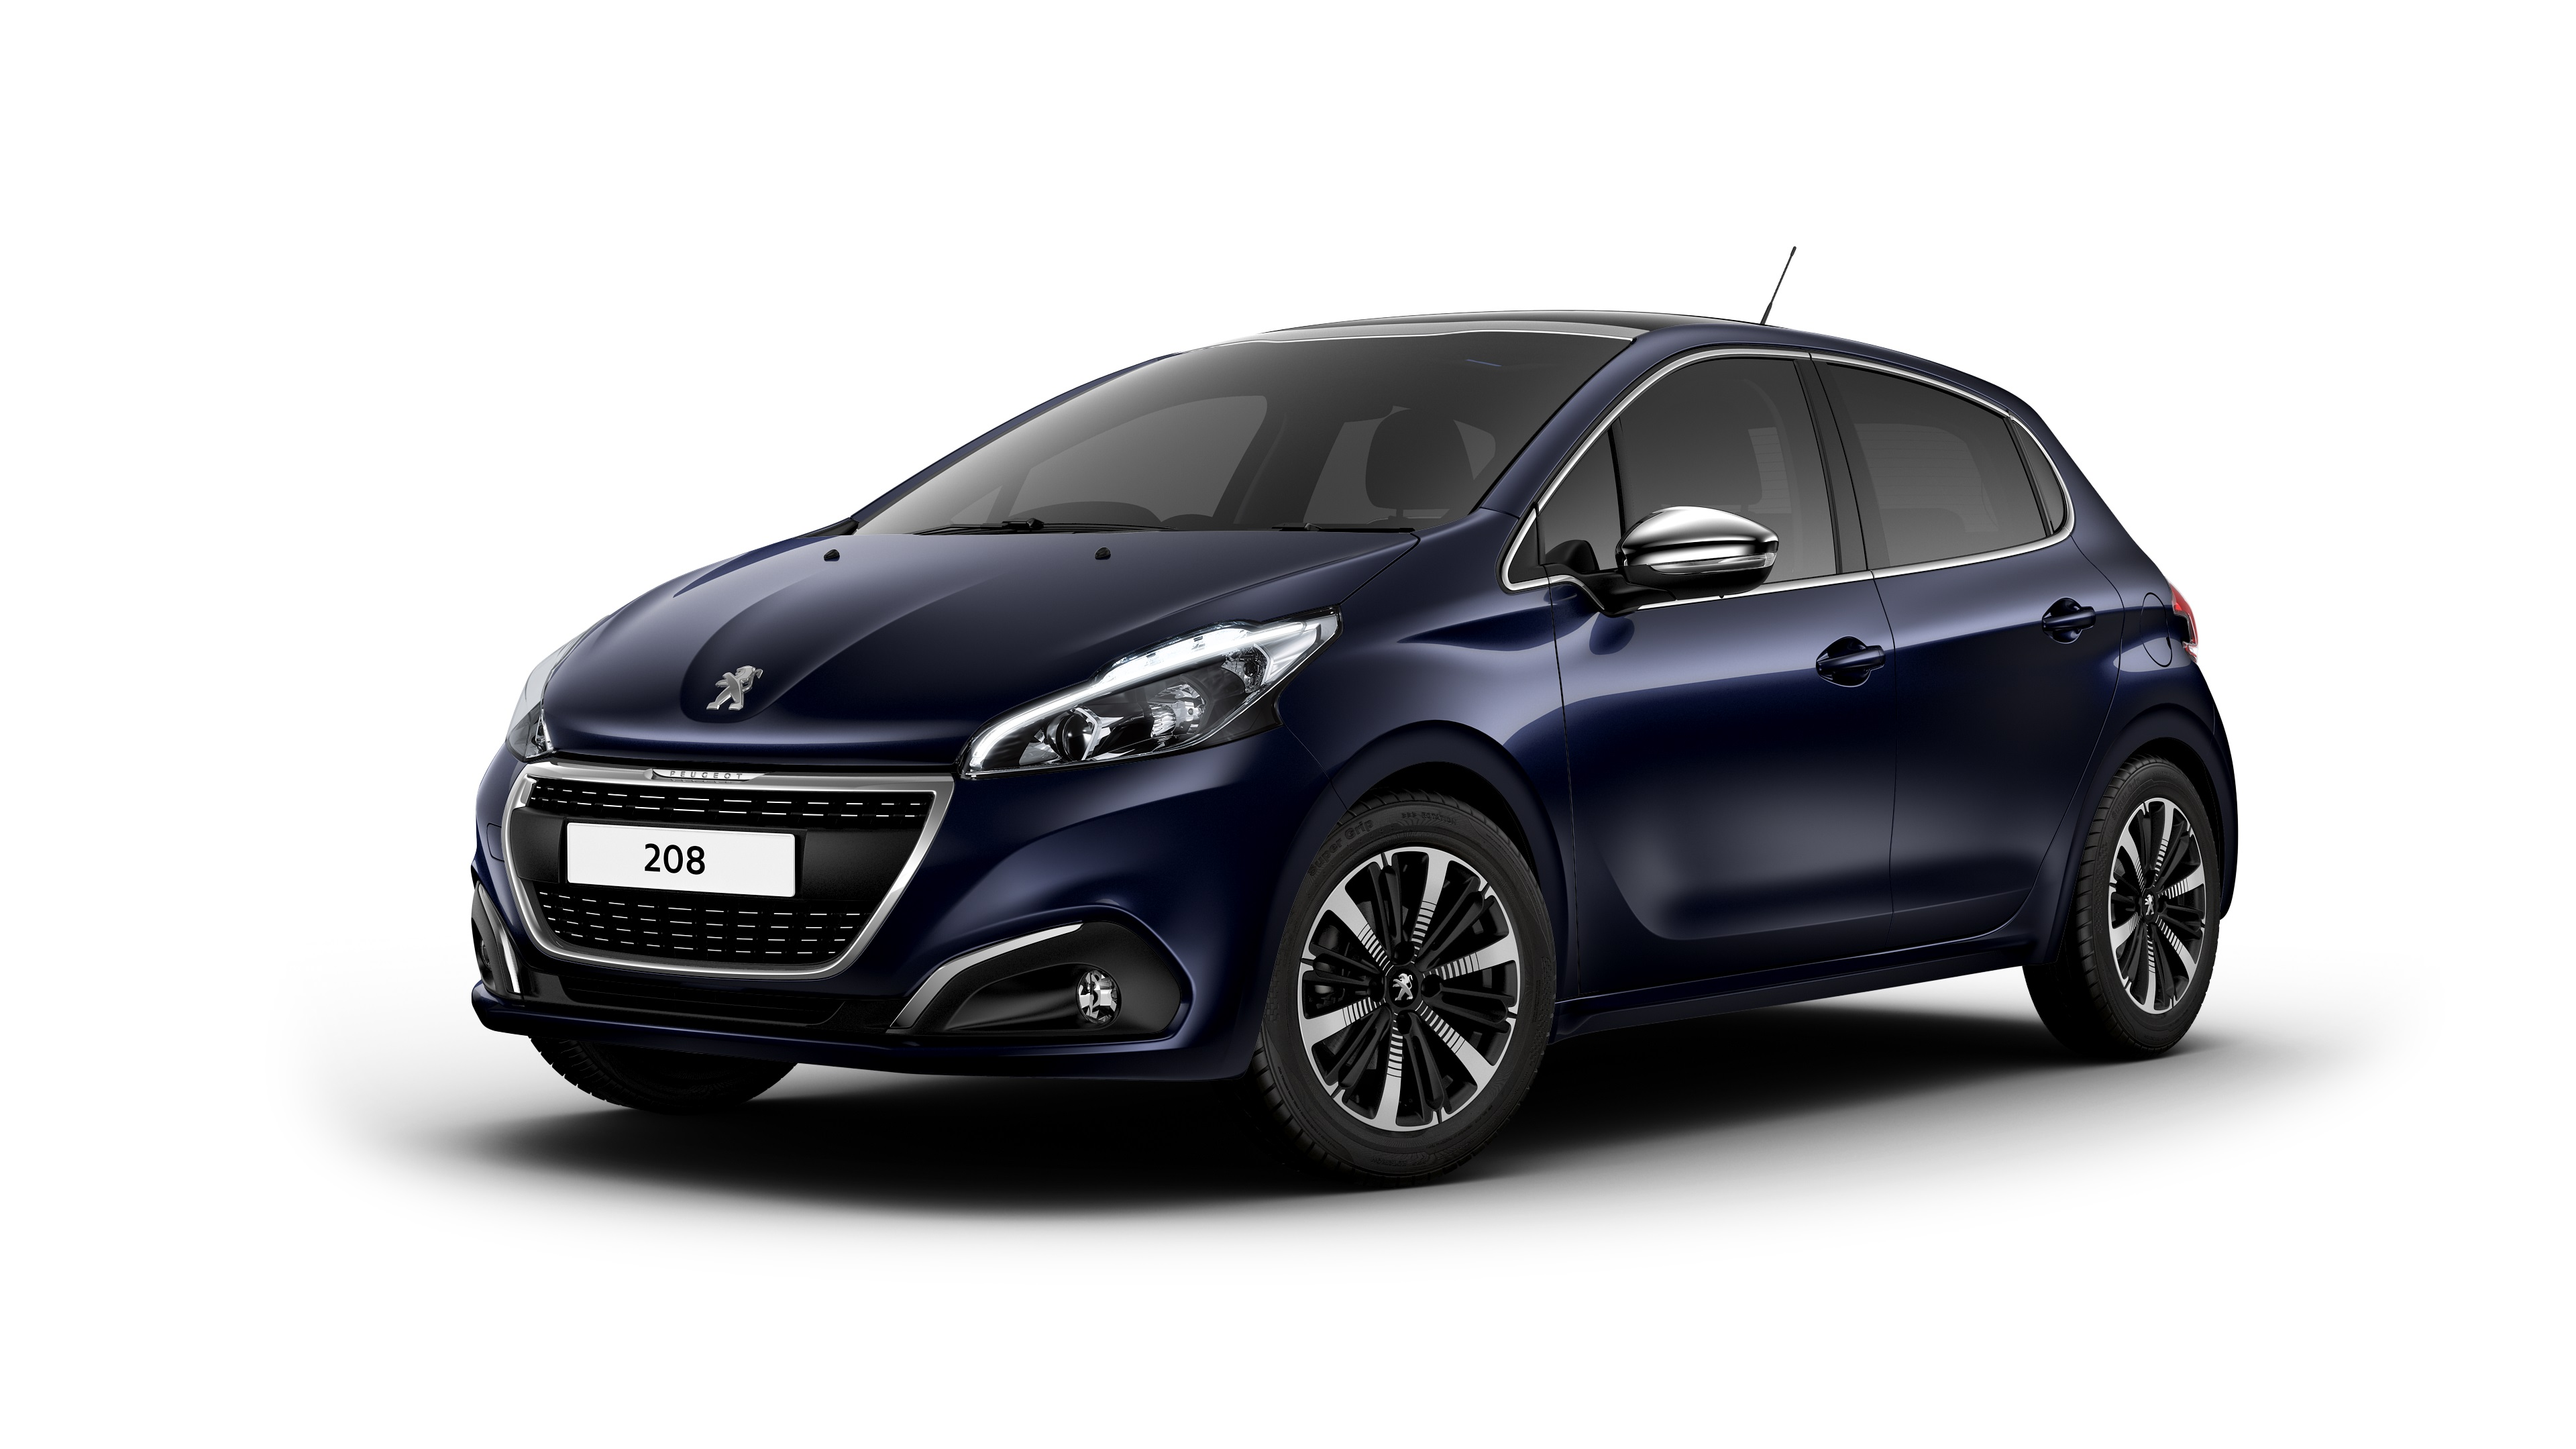 2017 peugeot 208 allure premium review gallery top speed. Black Bedroom Furniture Sets. Home Design Ideas